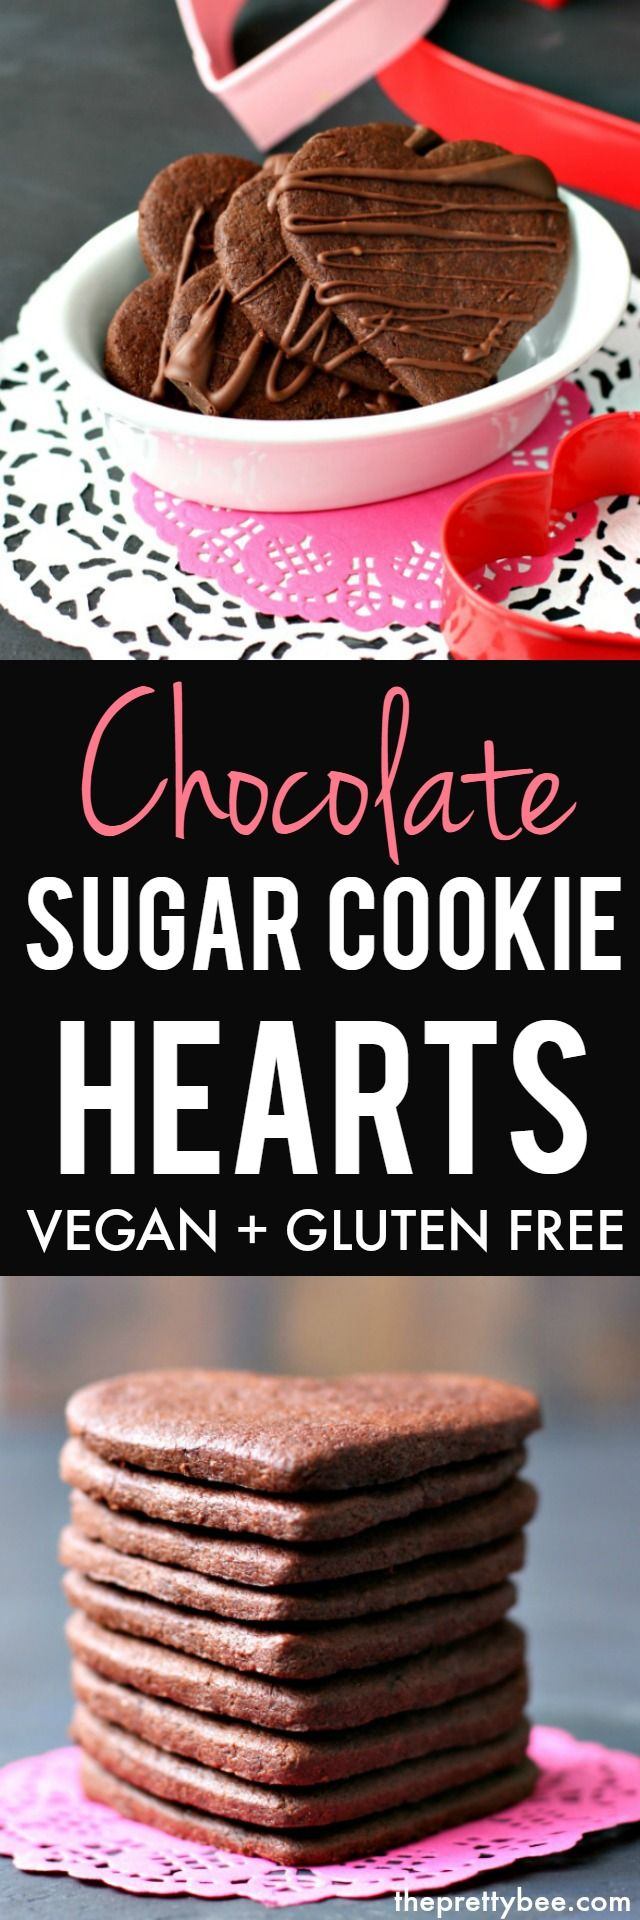 Make these gluten free and vegan chocolate sugar cookie hearts for your loved ones this Valentine's Day! A chocolate drizzle on top makes these cookies extra special. #vegan #valentinesday